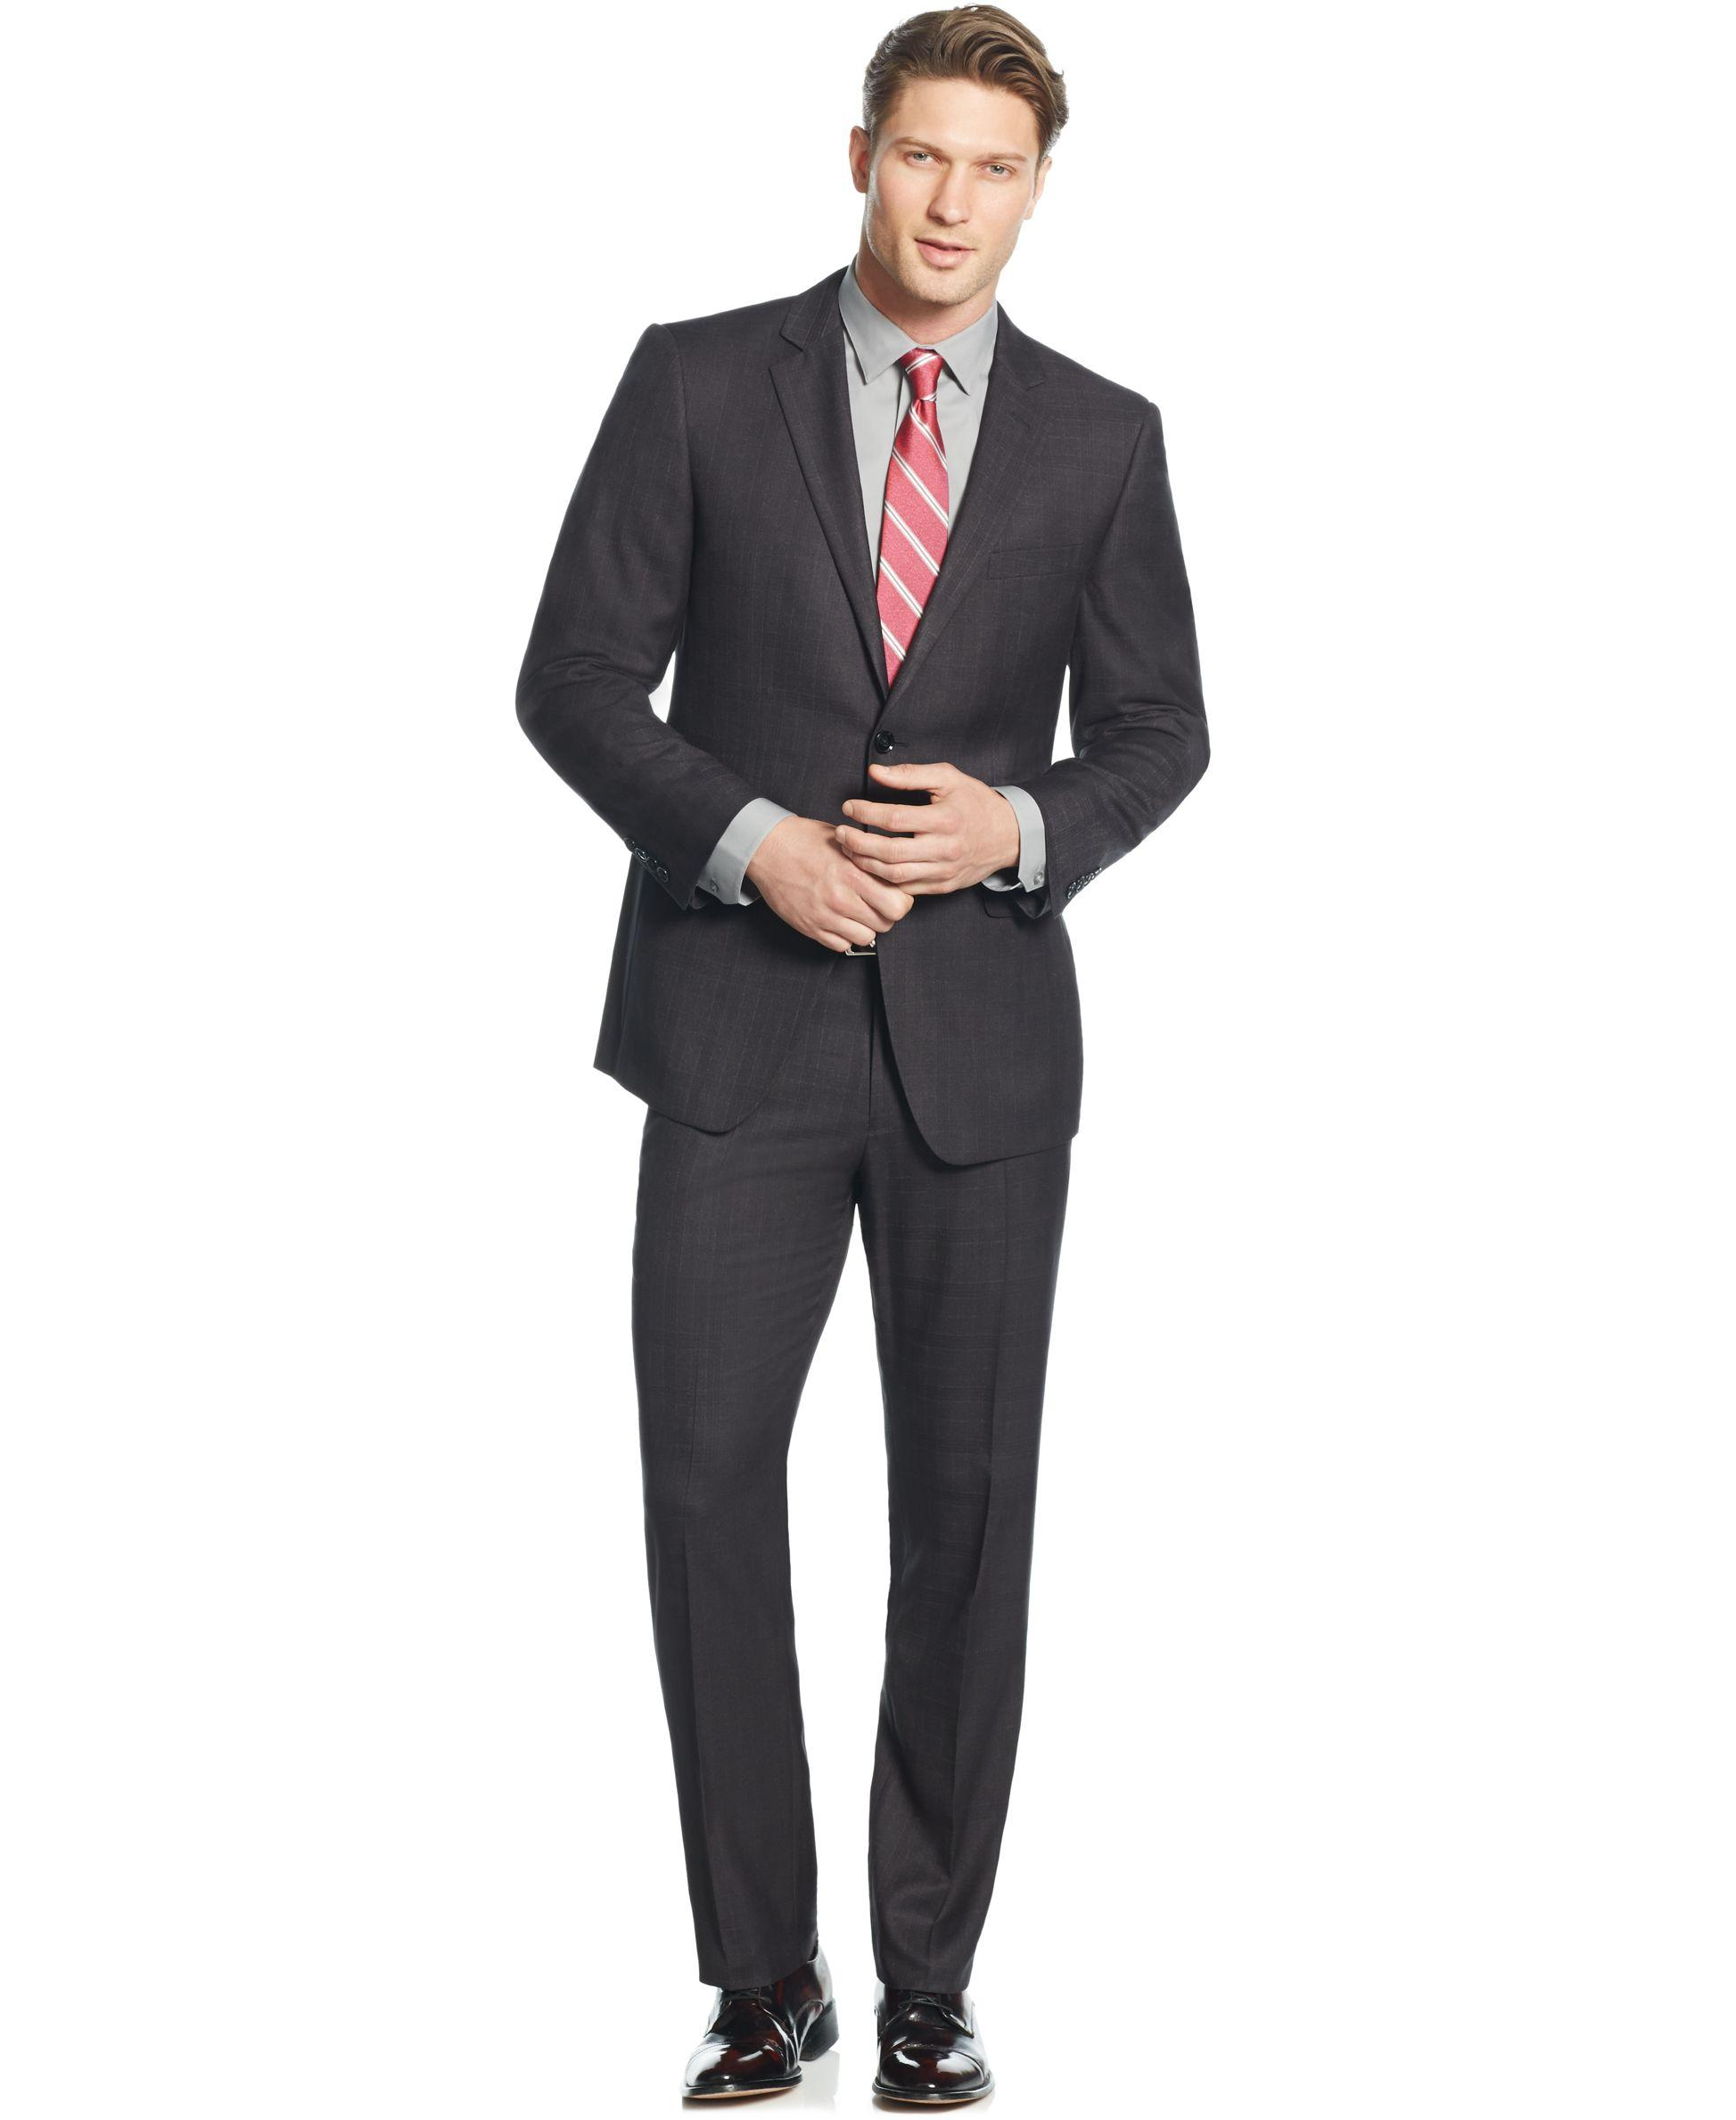 Perry ellis Portfolio Charcoal Plaid Slim-fit Suit in Gray for Men